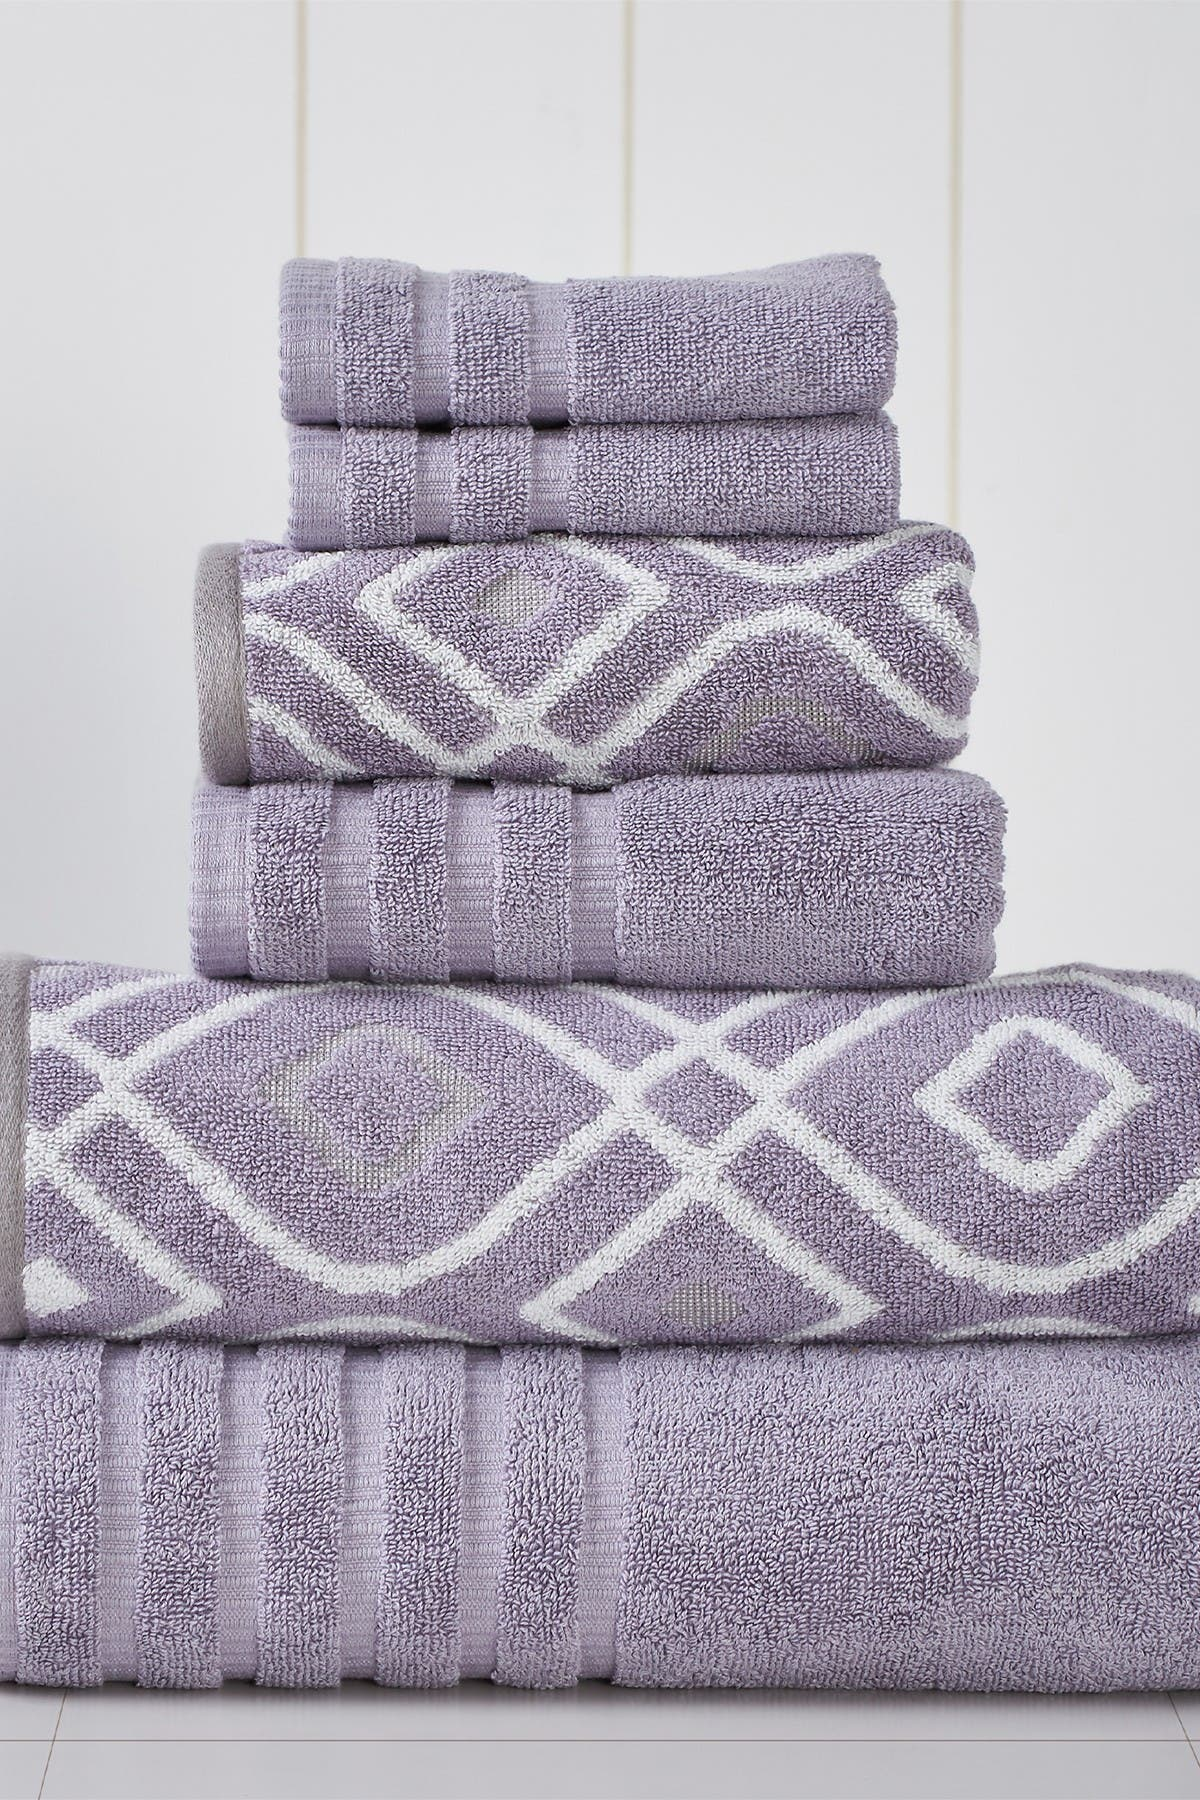 Image of Modern Threads Yard Dyed Towel 6-Piece Set - Oxford Gray Lavender